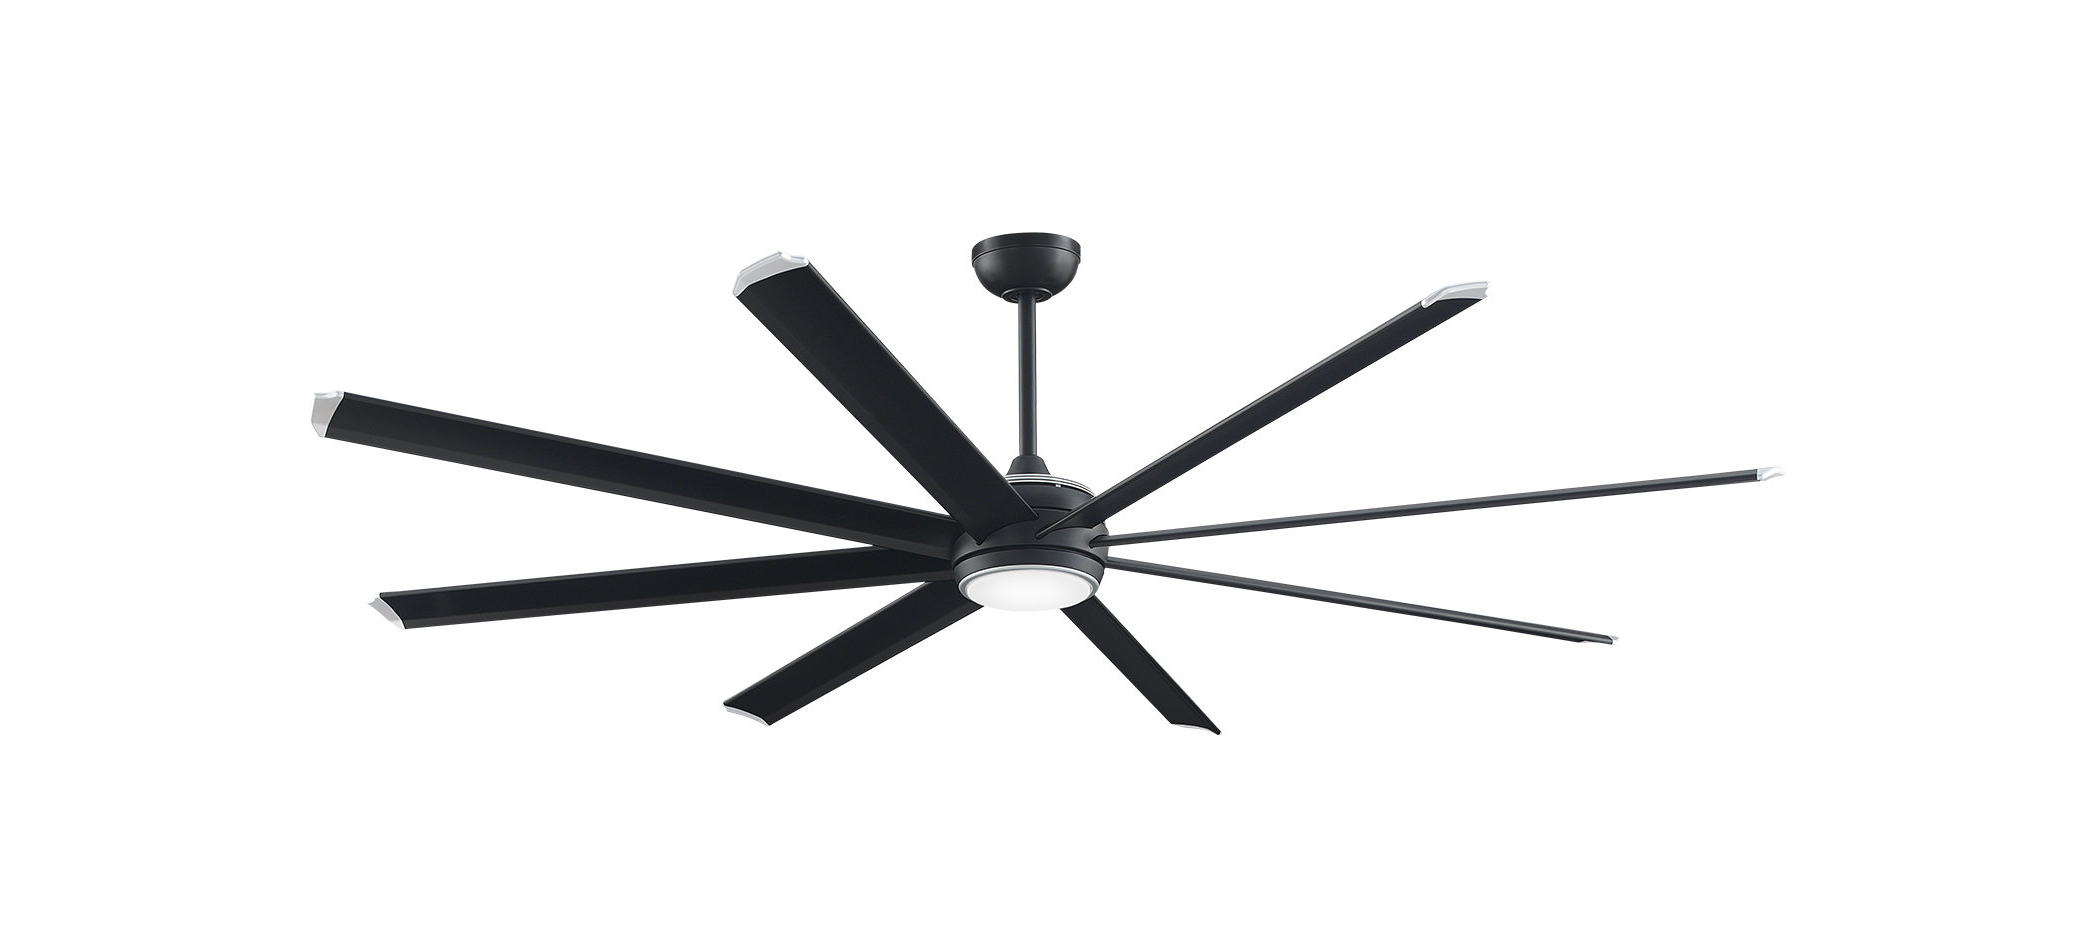 Well Liked Bankston 8 Blade Led Ceiling Fans Regarding Stellar Outdoor Led Smart Ceiling Fan Motor With Remote, Light Kit Included (View 18 of 20)